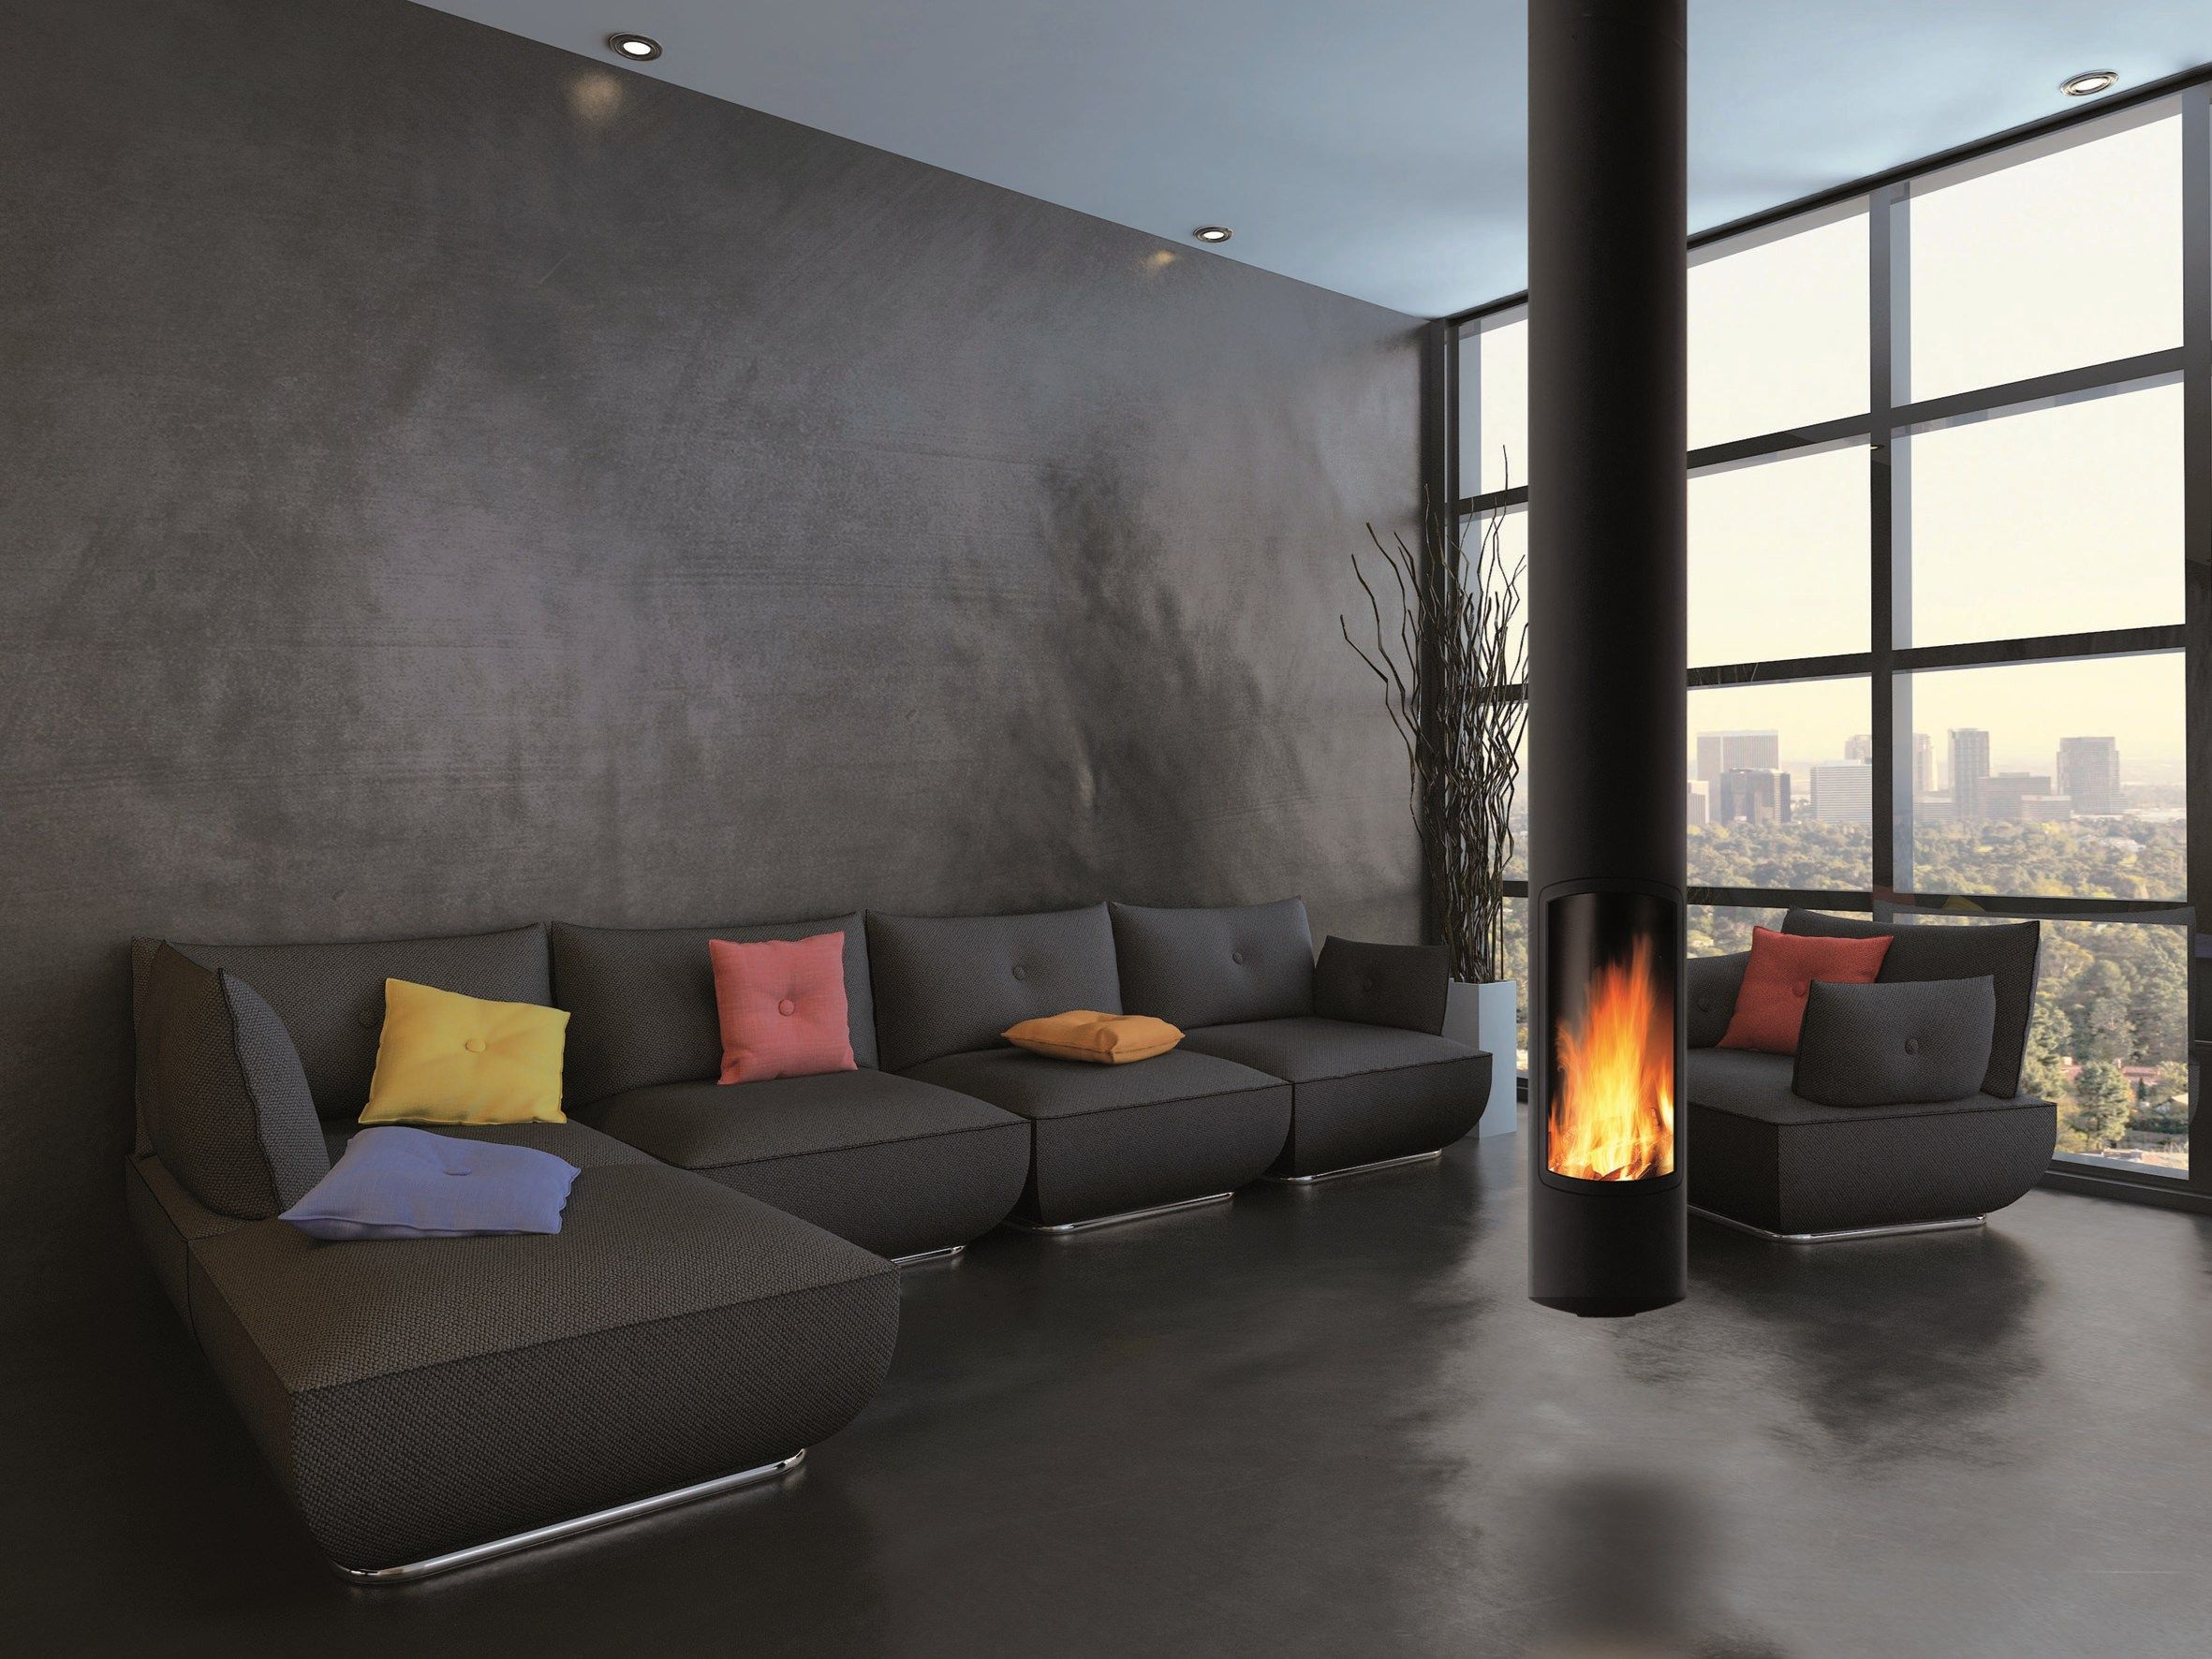 Wood Burning Central Hanging Fireplace Slimfocus By Focus